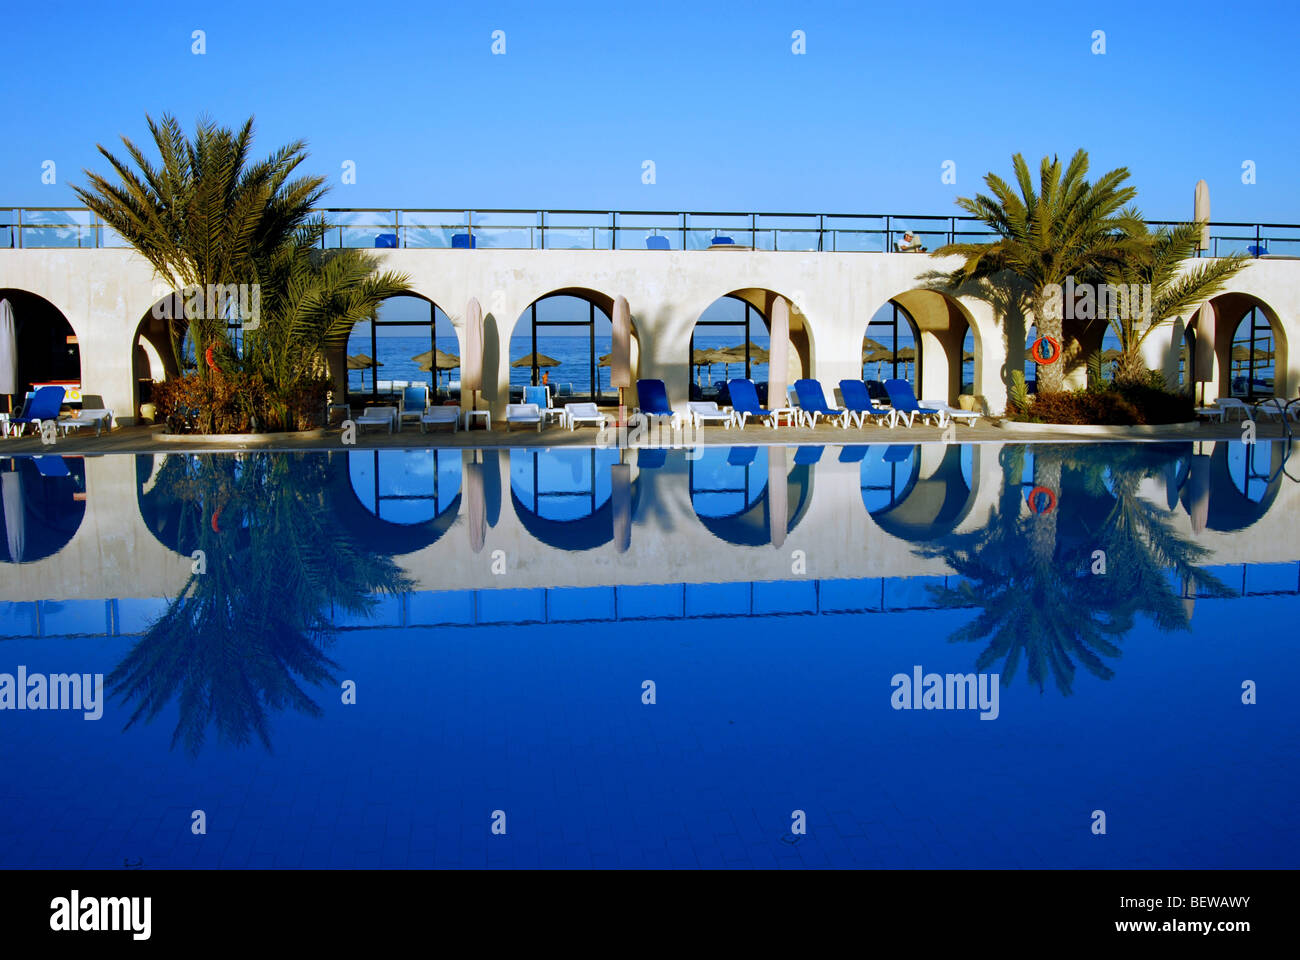 Reflection of arcades and palms on water surface of a swimming pool, Djerba, Tunisia - Stock Image